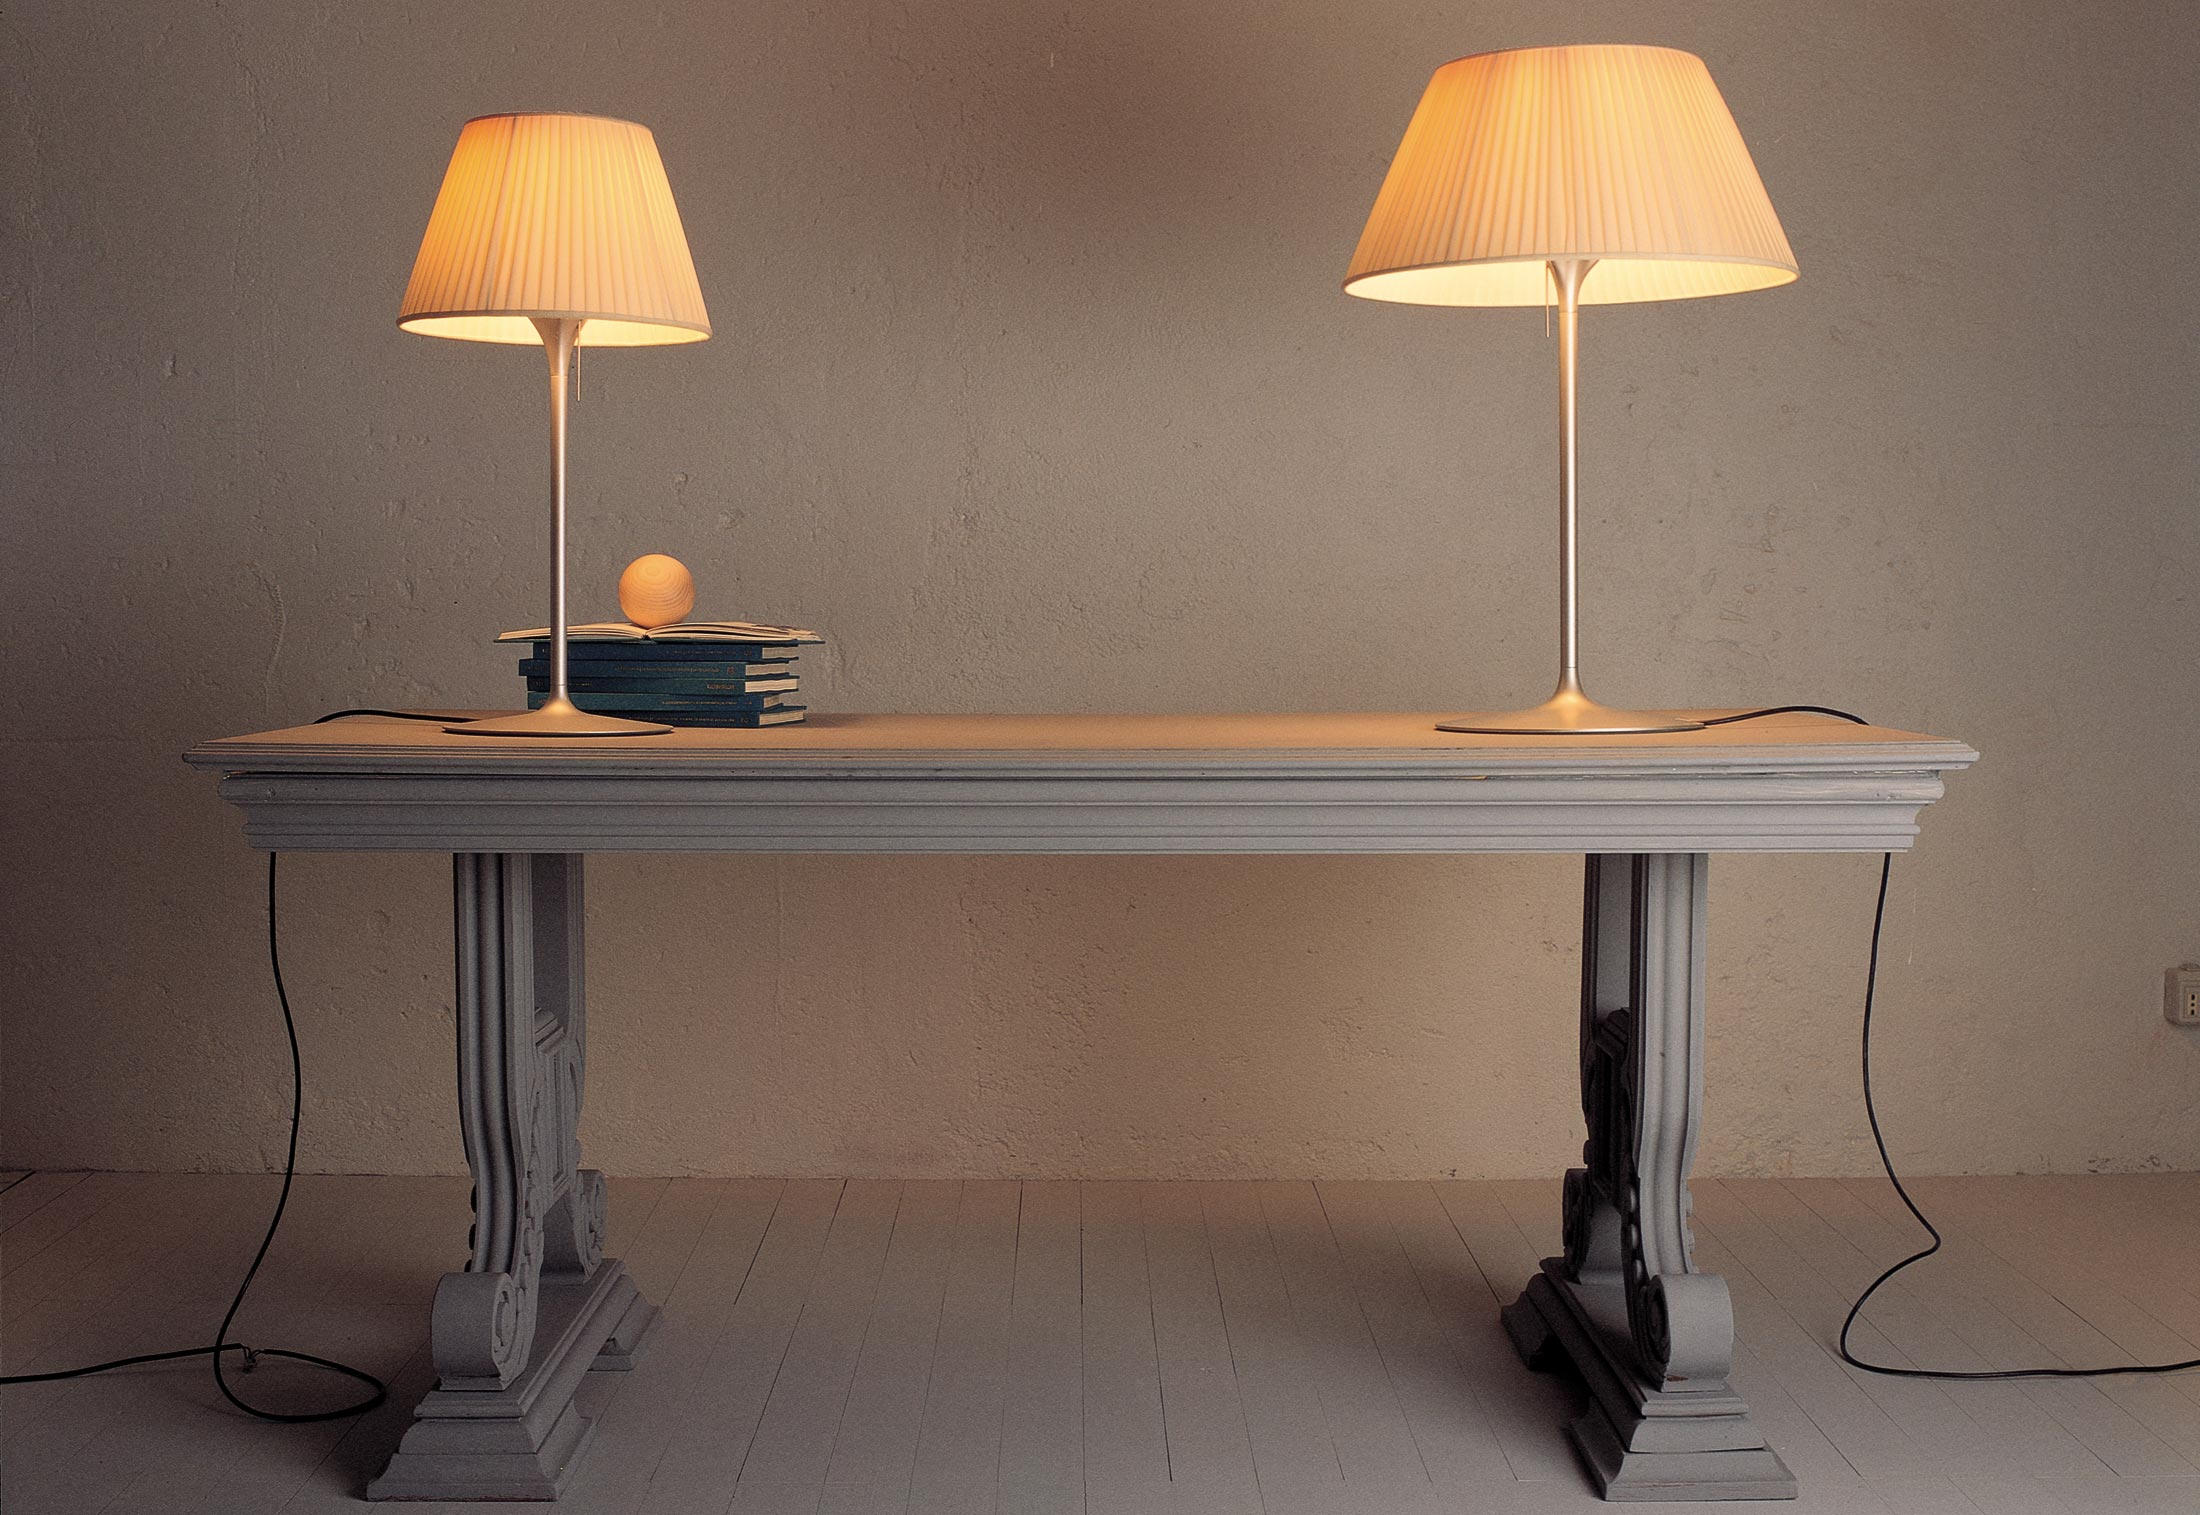 Romeo Soft T1 T2 Table Lamp By Flos Stylepark